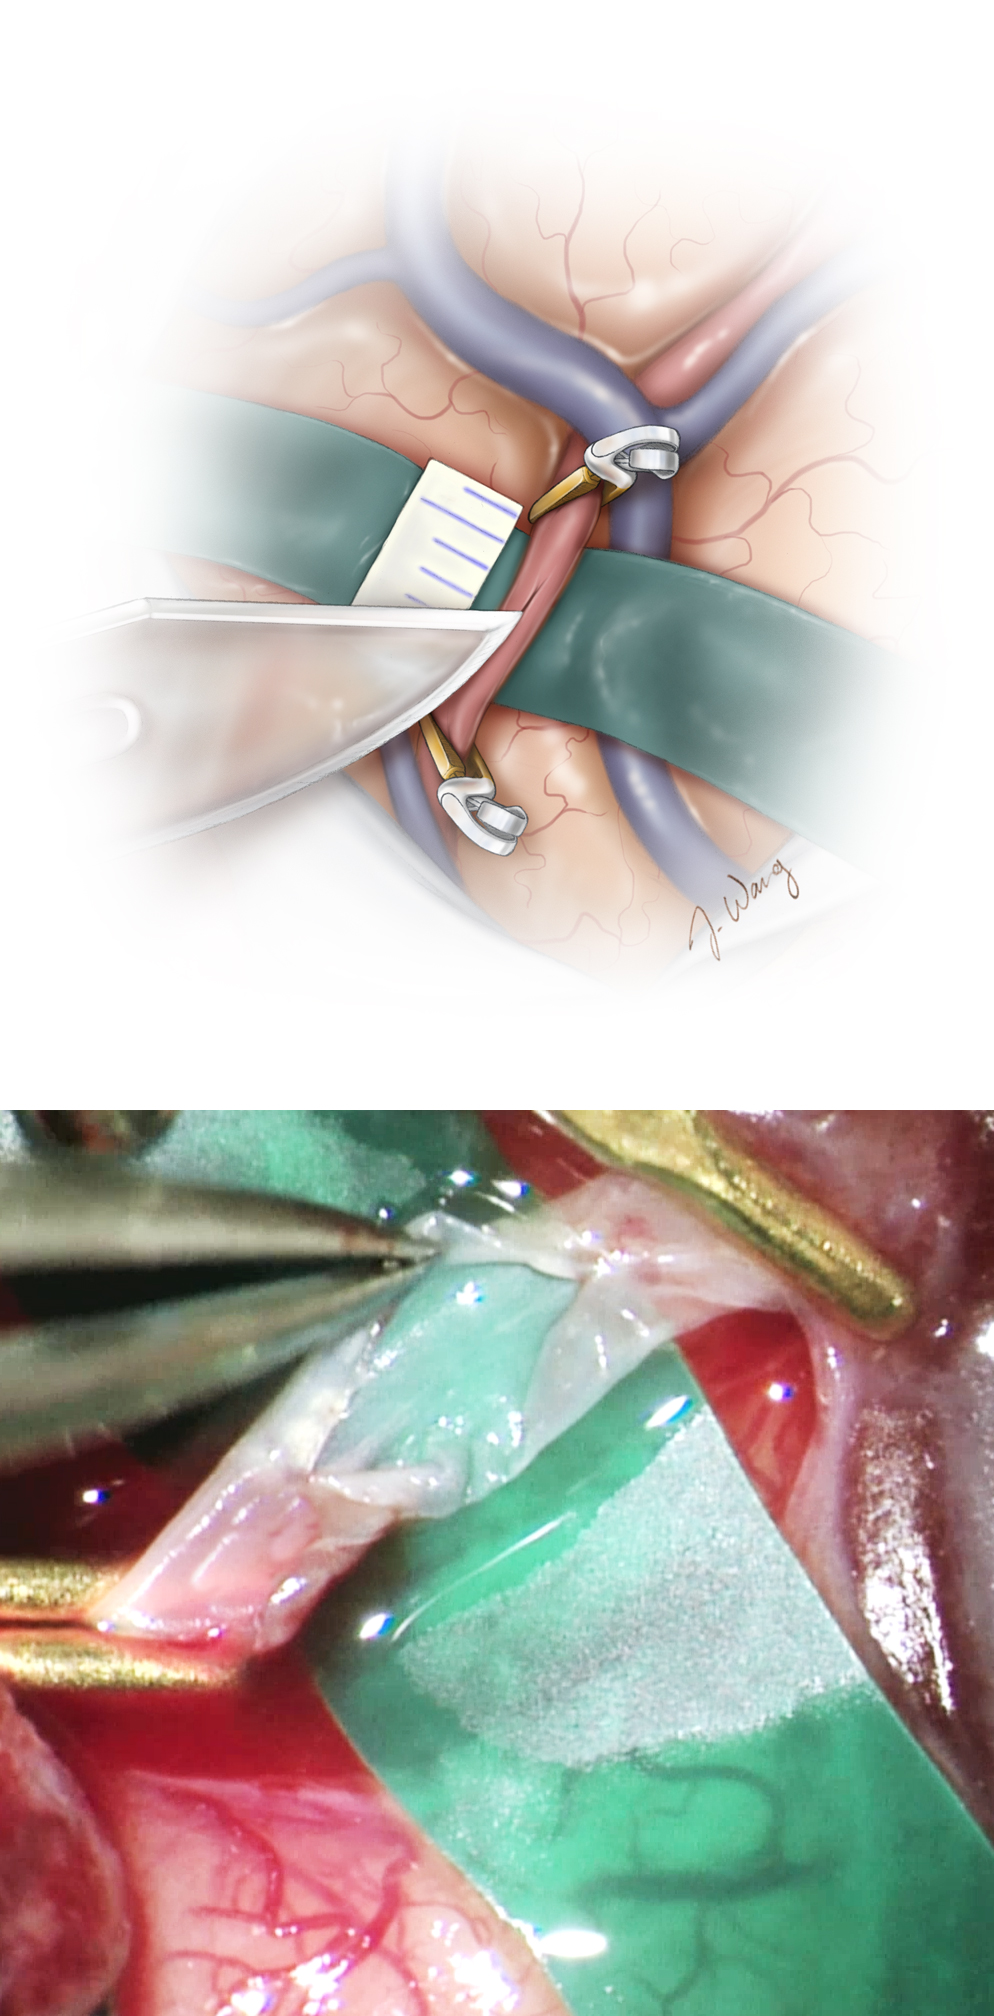 Figure 8: The cortical MCA branch is then temporarily clip occluded using two miniclips, and a diamond-shaped arteriotomy is completed using a number of different blades, including a beaver ophthalmic blade or diamond knife. This arteriotomy is then extended using microscissors to about 2–3 times the diameter of the distal end of the STA branch. A 5-mm segment of the ruler is cut and used for these measurements.